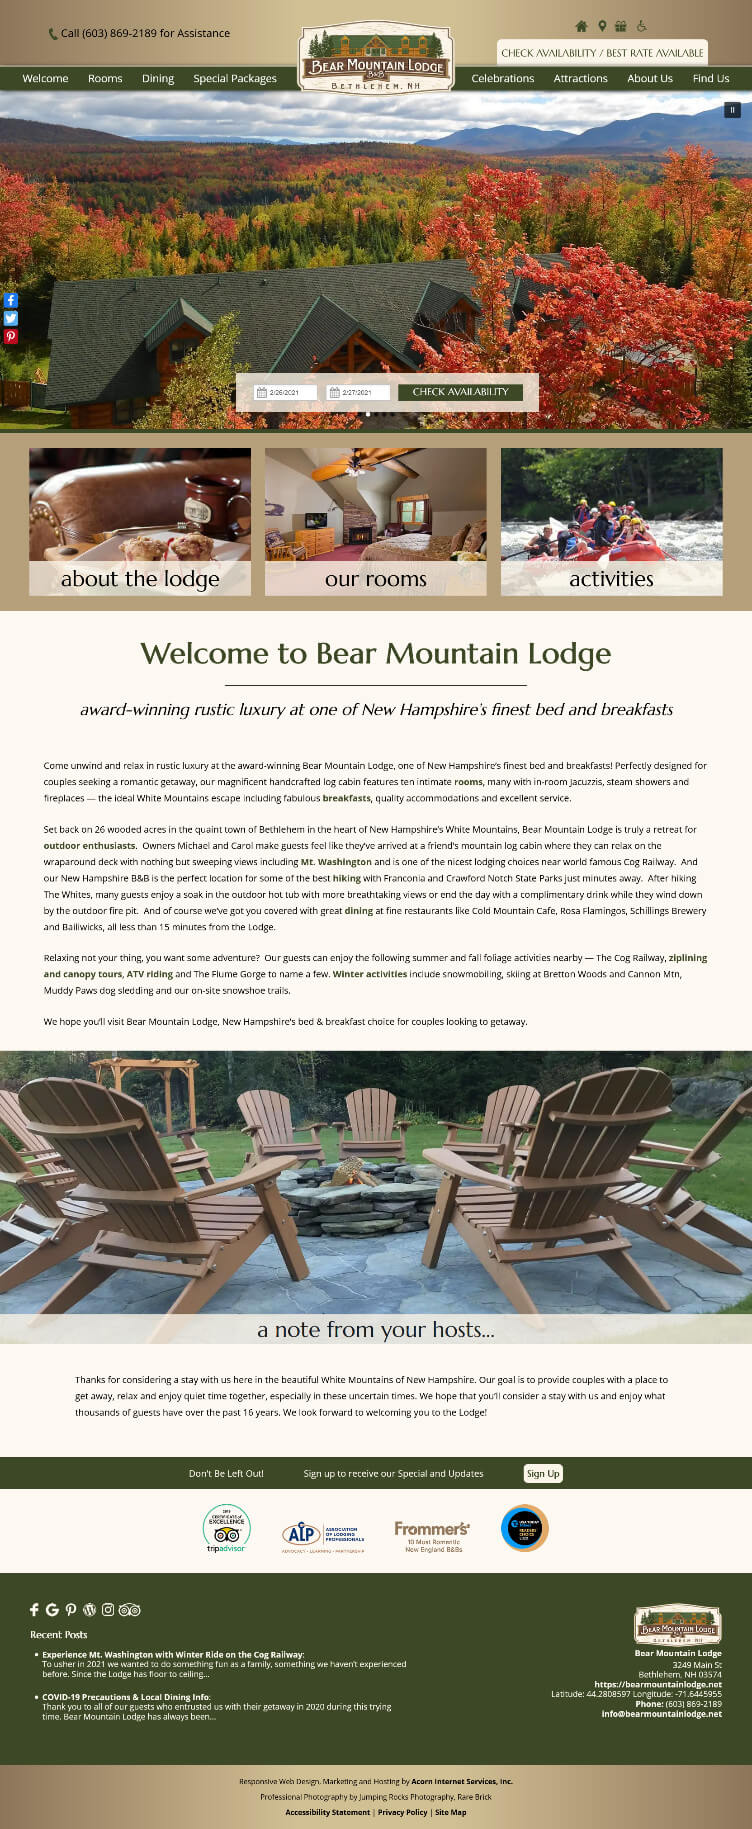 Home page screen cap of Bear Mountain Lodge